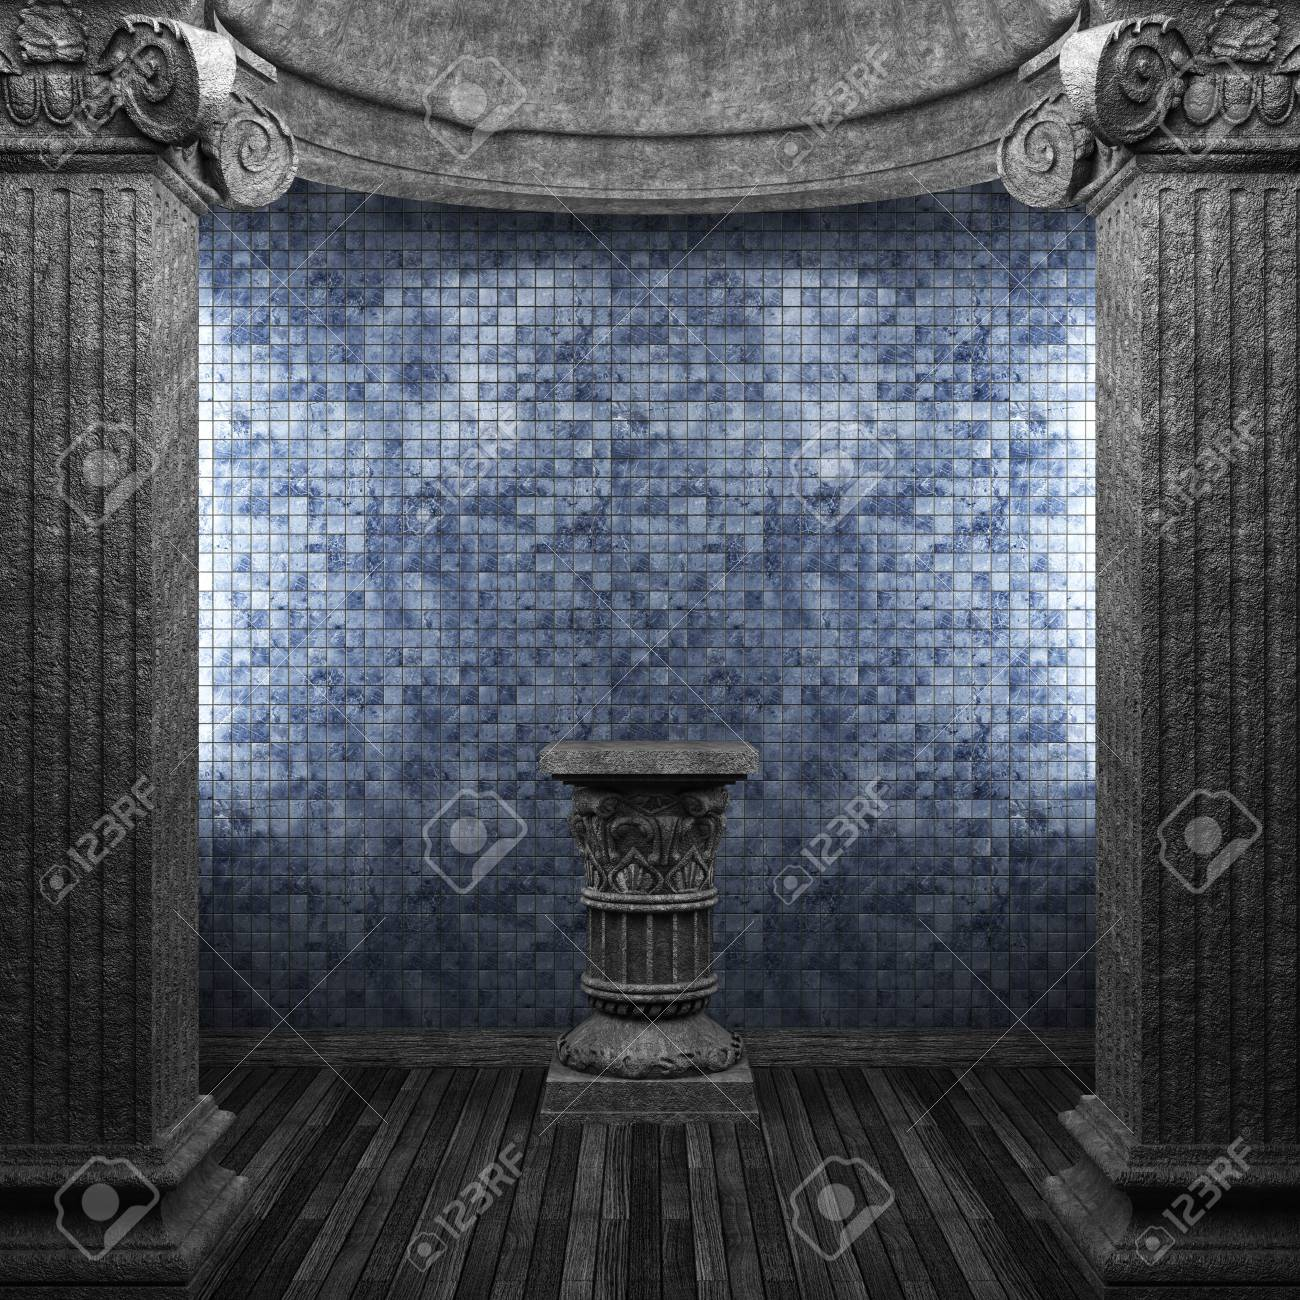 stone columns, pedestal and tile wall Stock Photo - 8502889